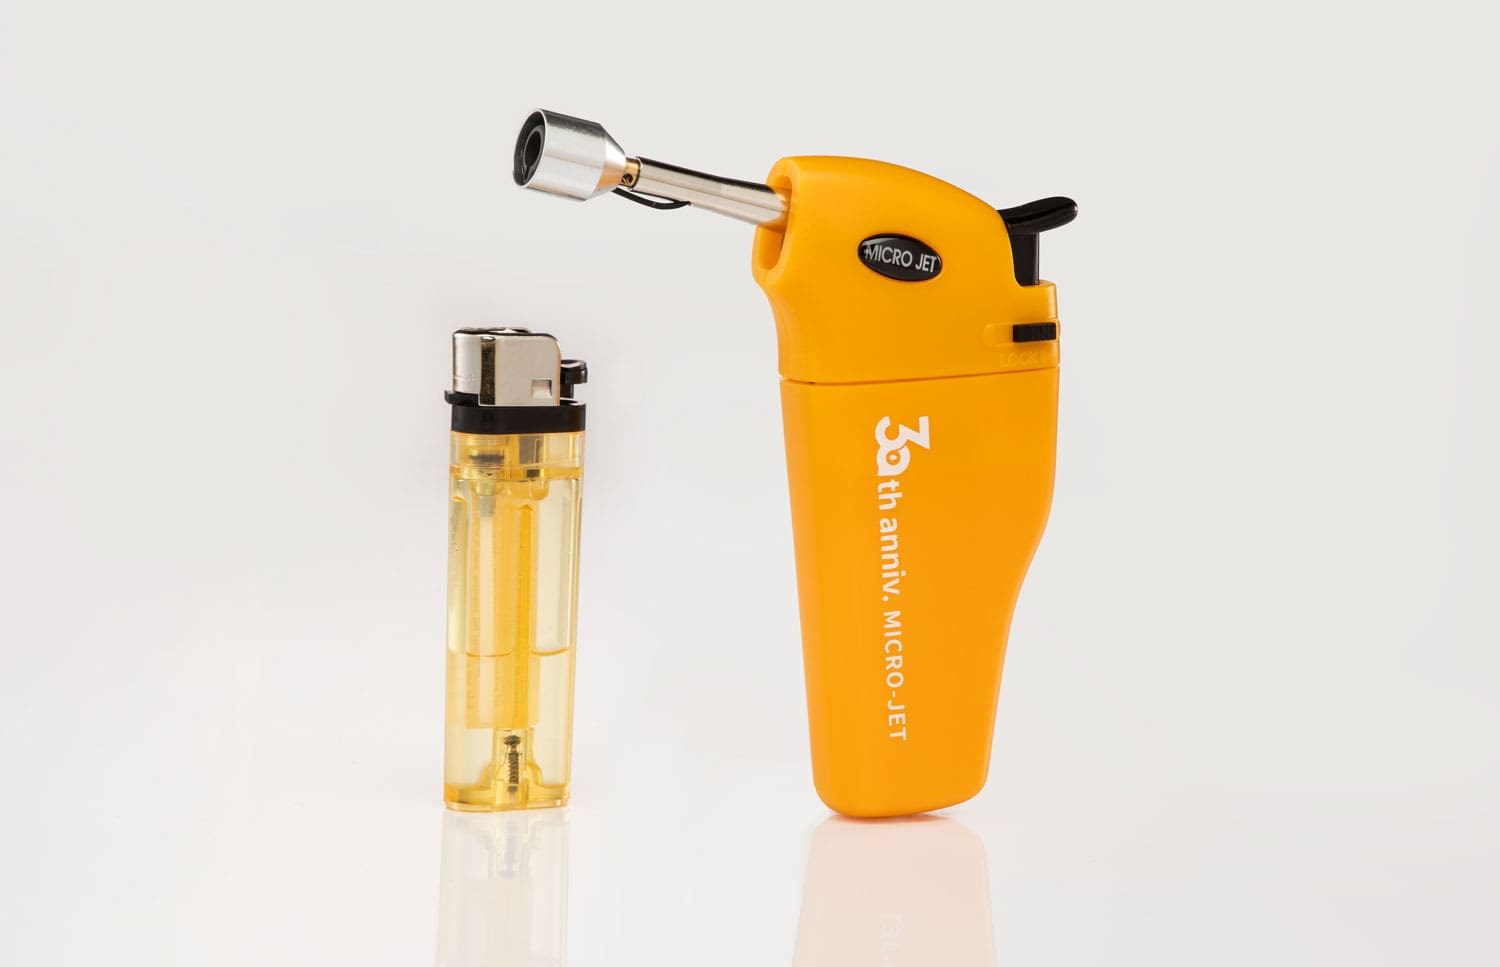 MJ-352 Micro jet precision handheld lighter features an extended nozzle and a modular lighter refill